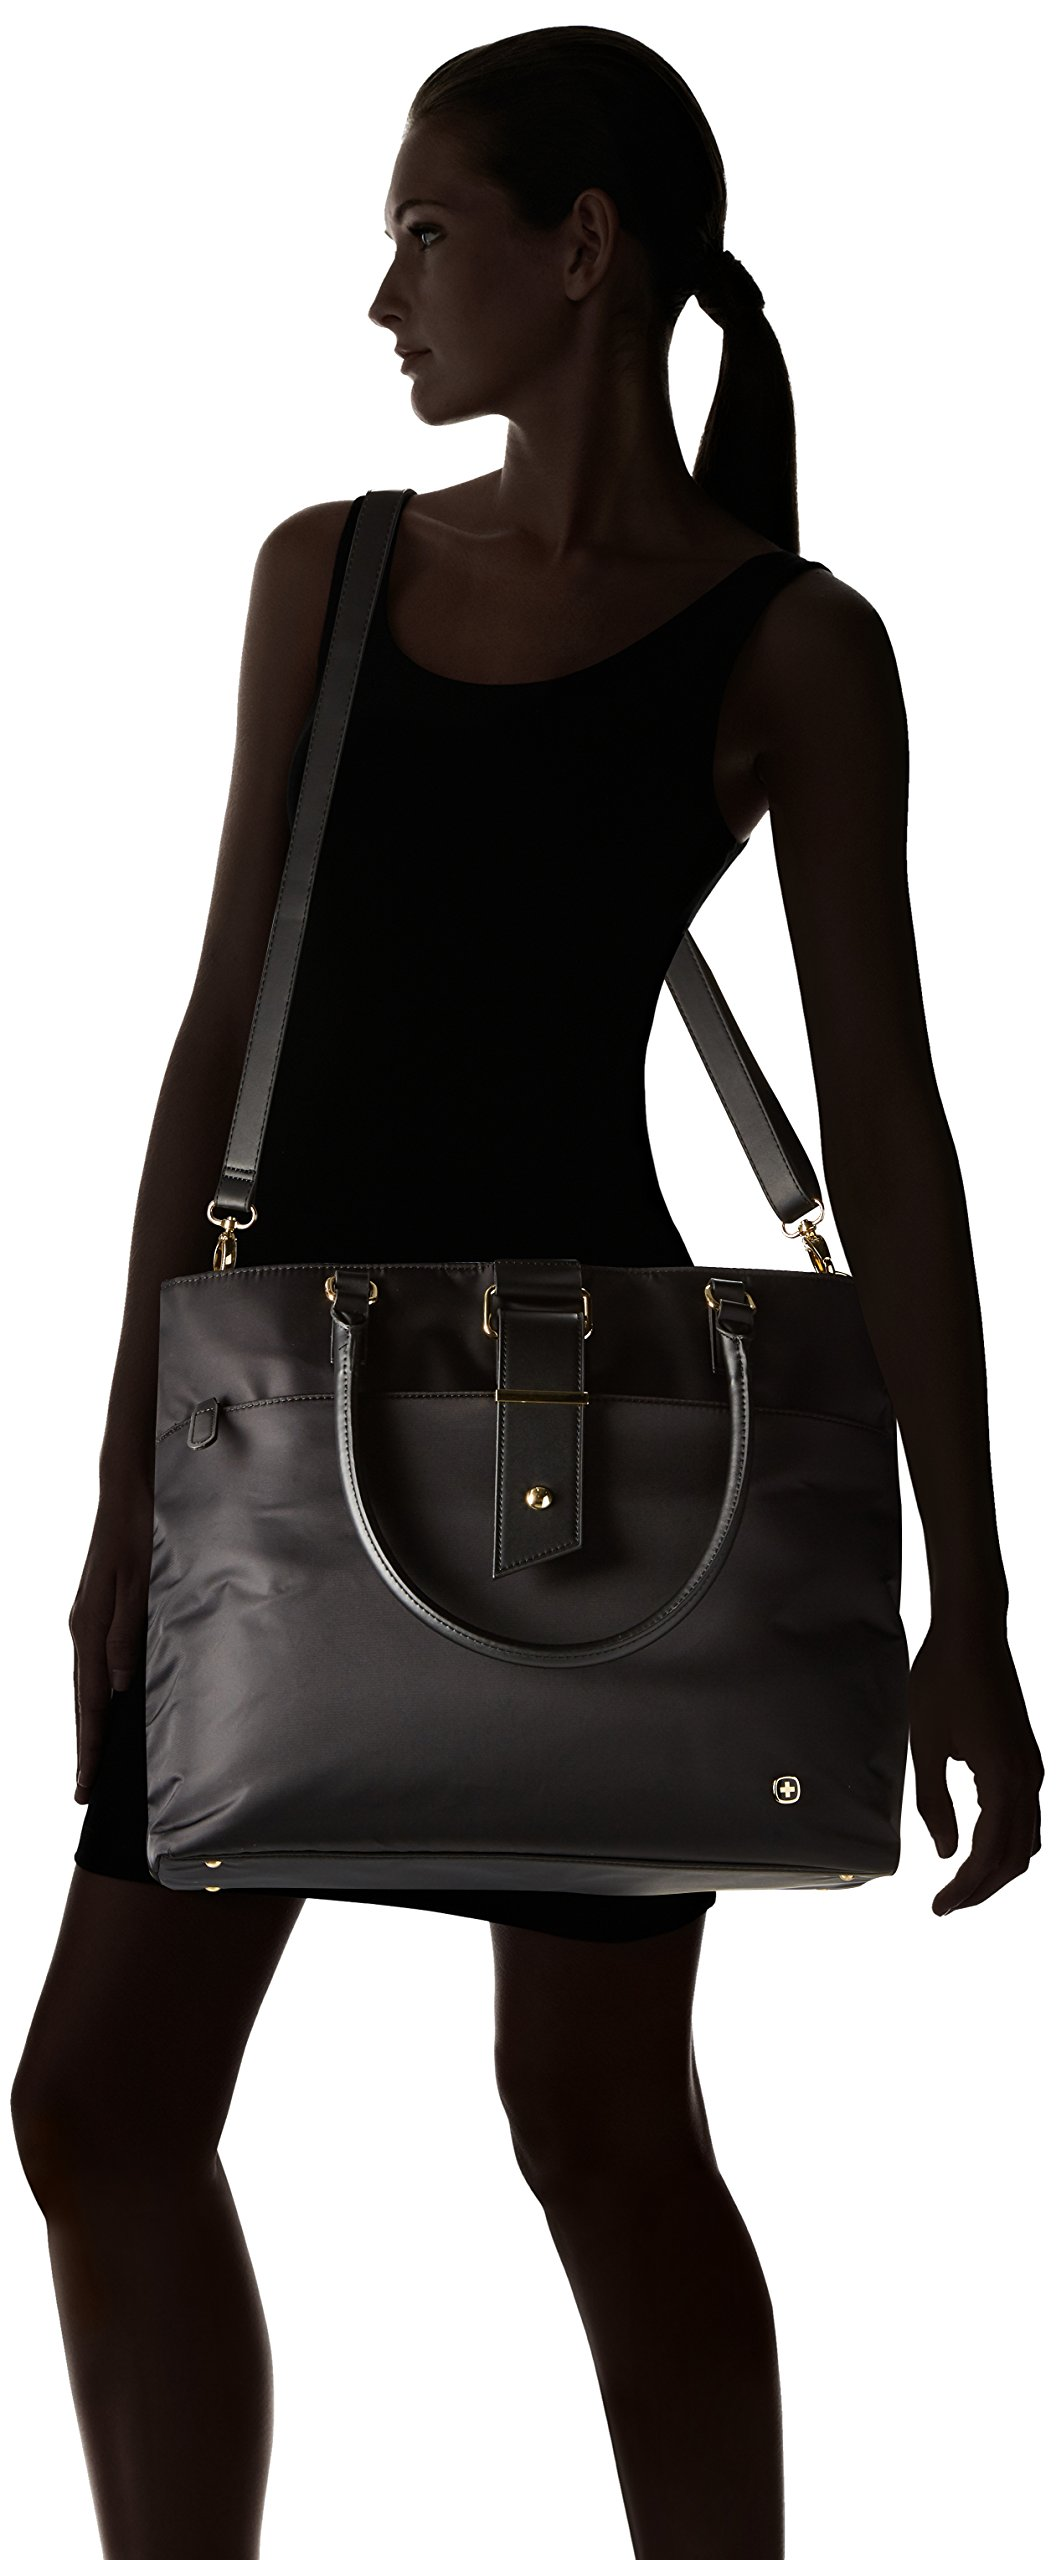 Wenger Luggage Ana 16'' Women's Laptop Tote Bag, Black, One Size by Wenger (Image #6)